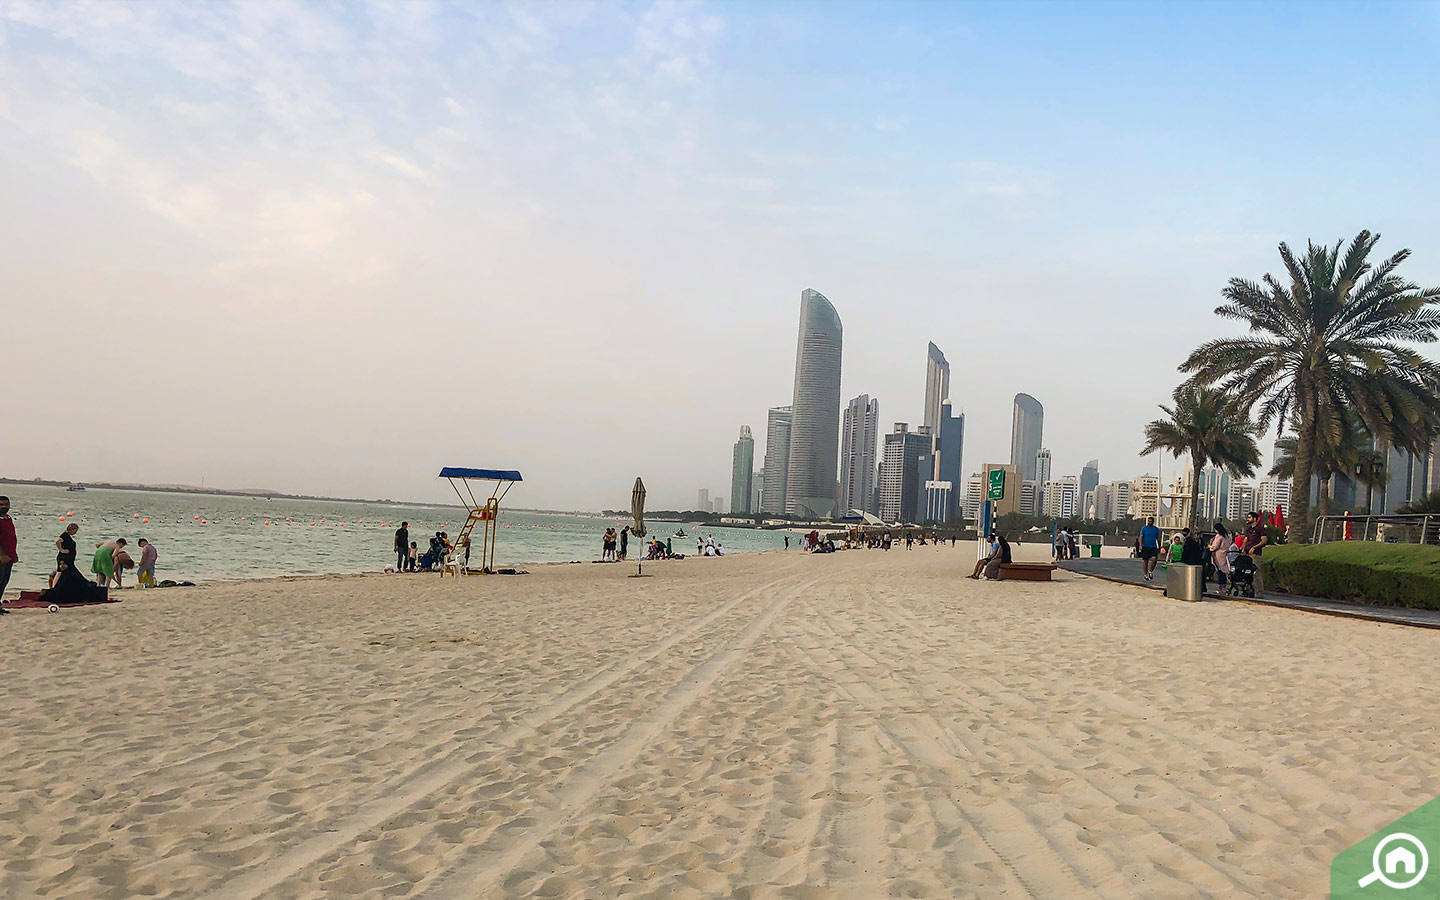 Corniche Beach in Abu Dhabi